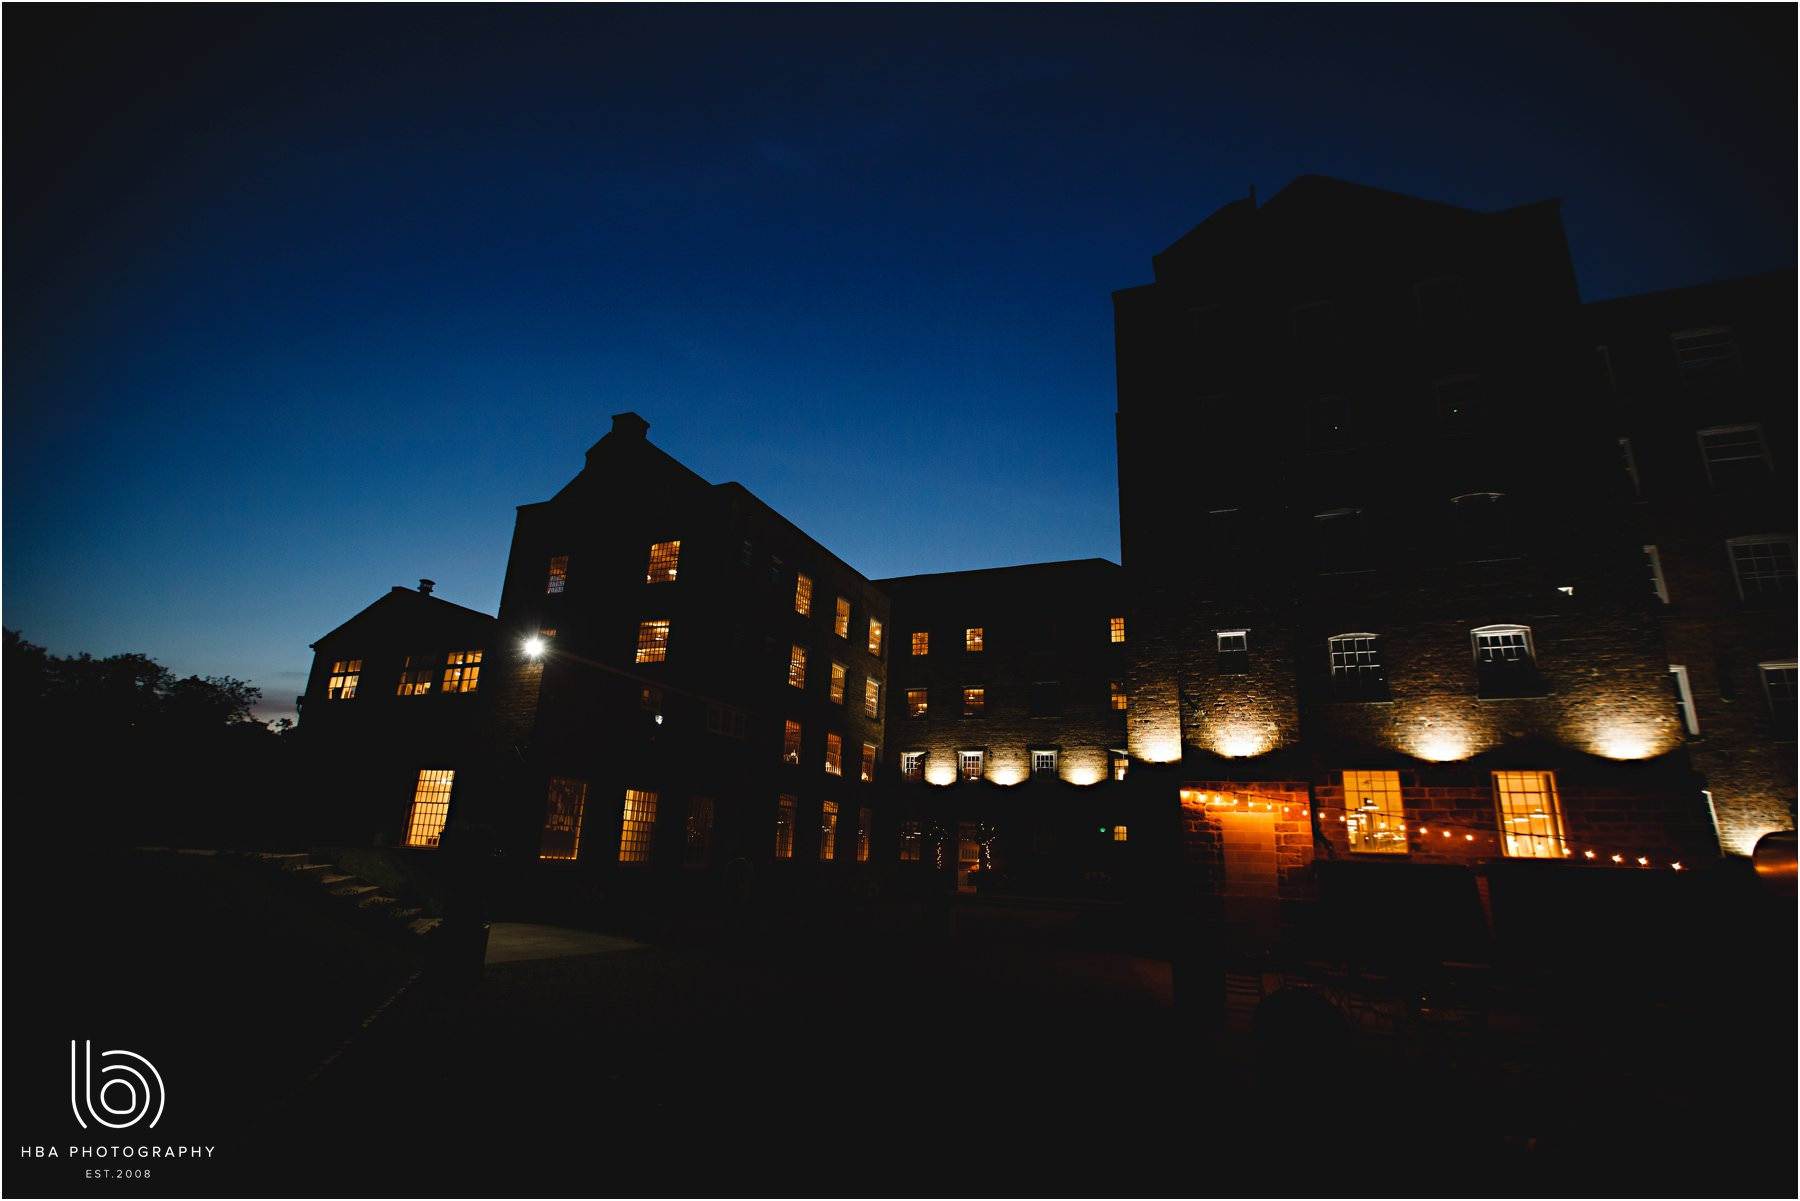 The West Mill at night